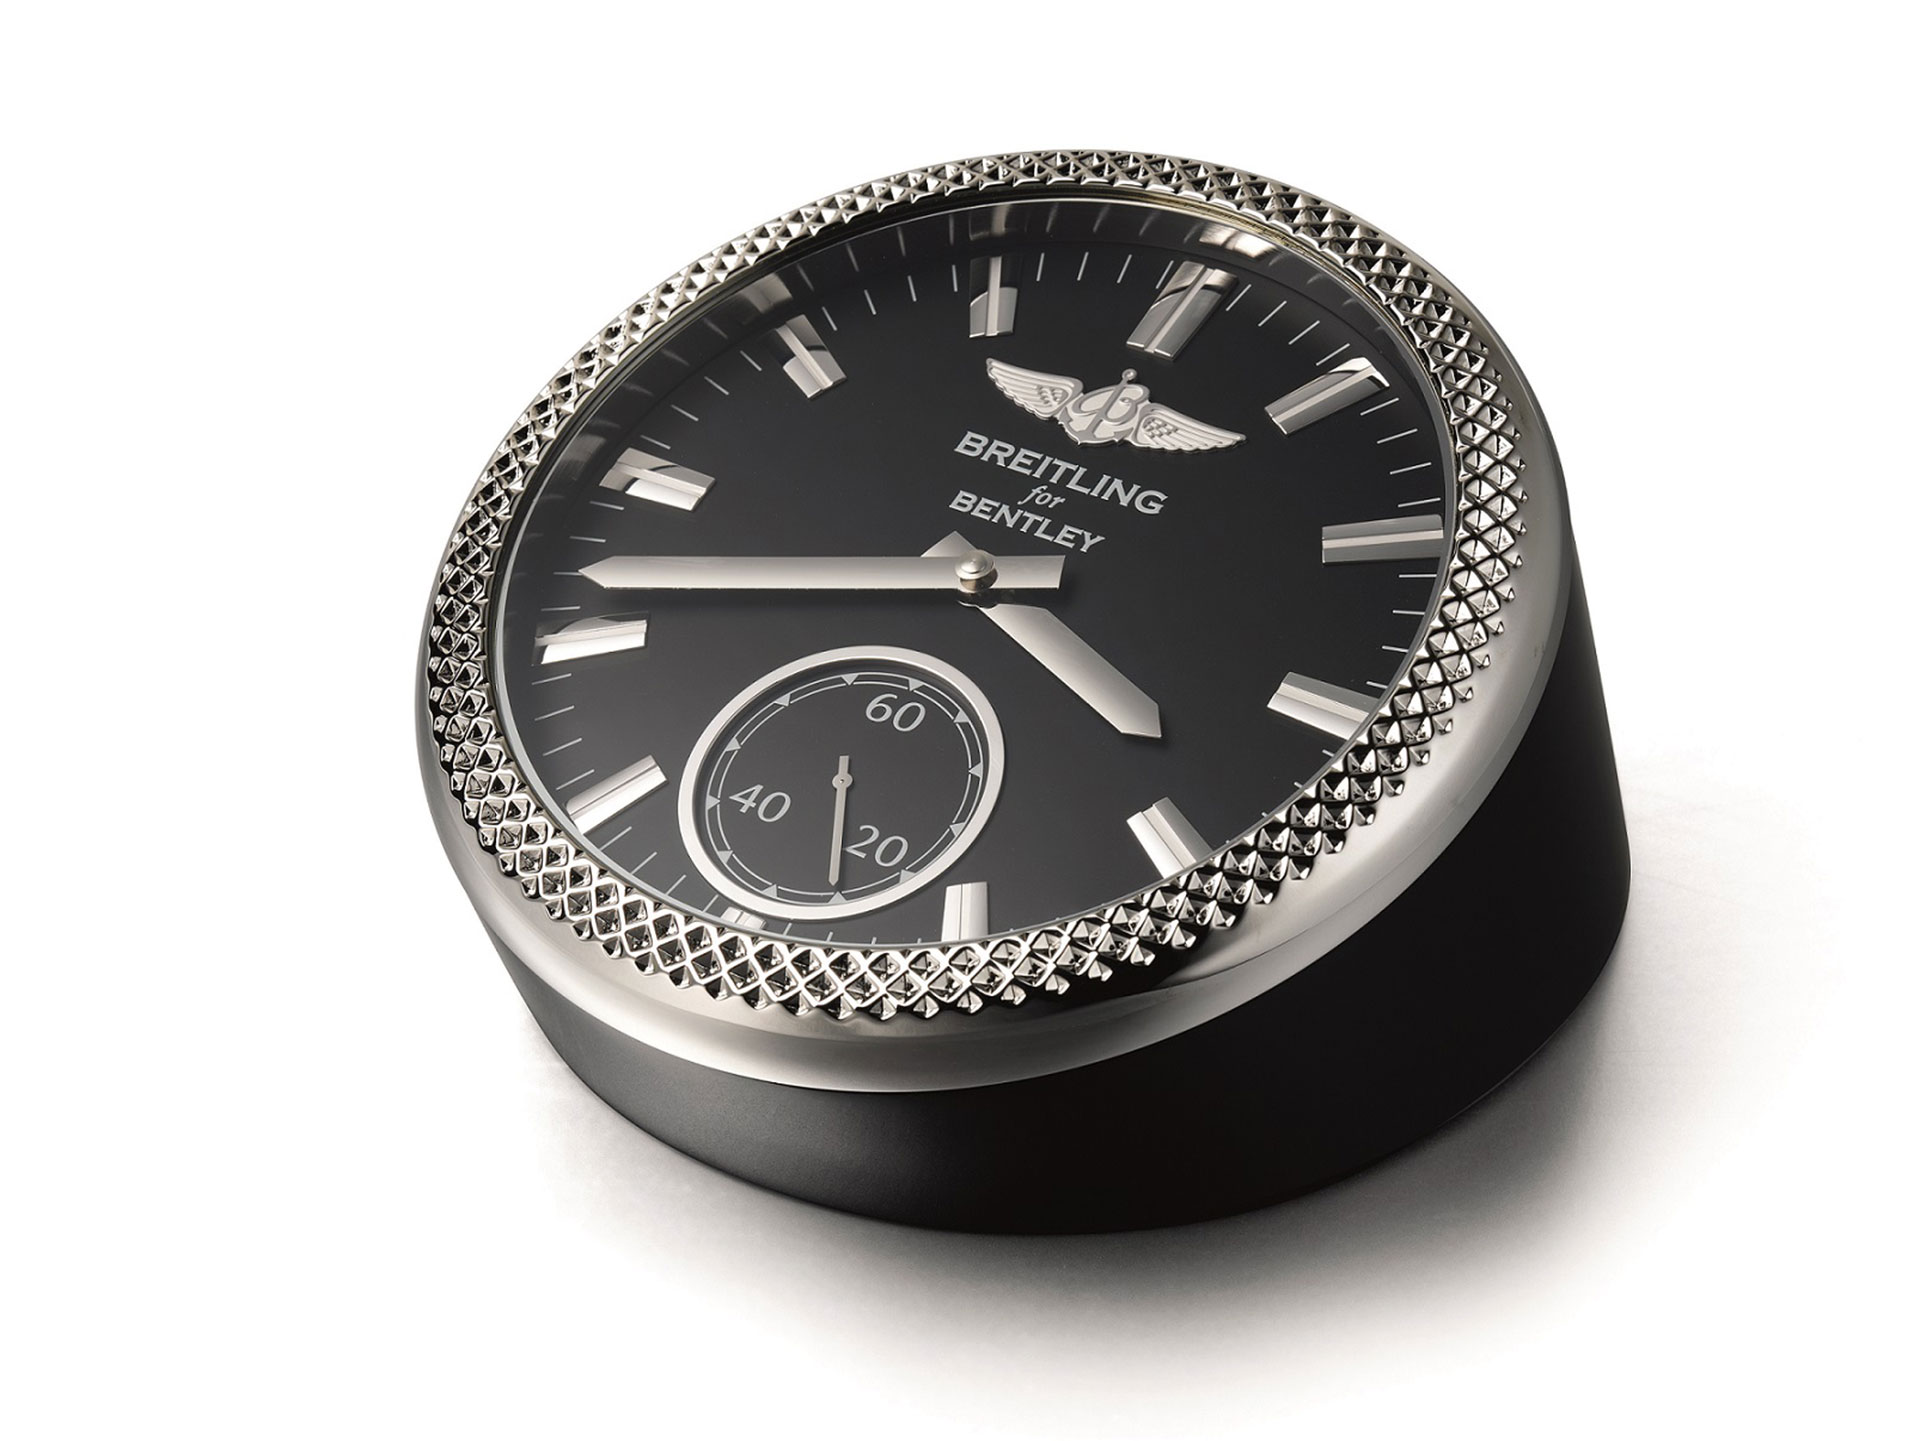 Breitling-for-Bentley-Desk-Watch-Arab-Motor-World